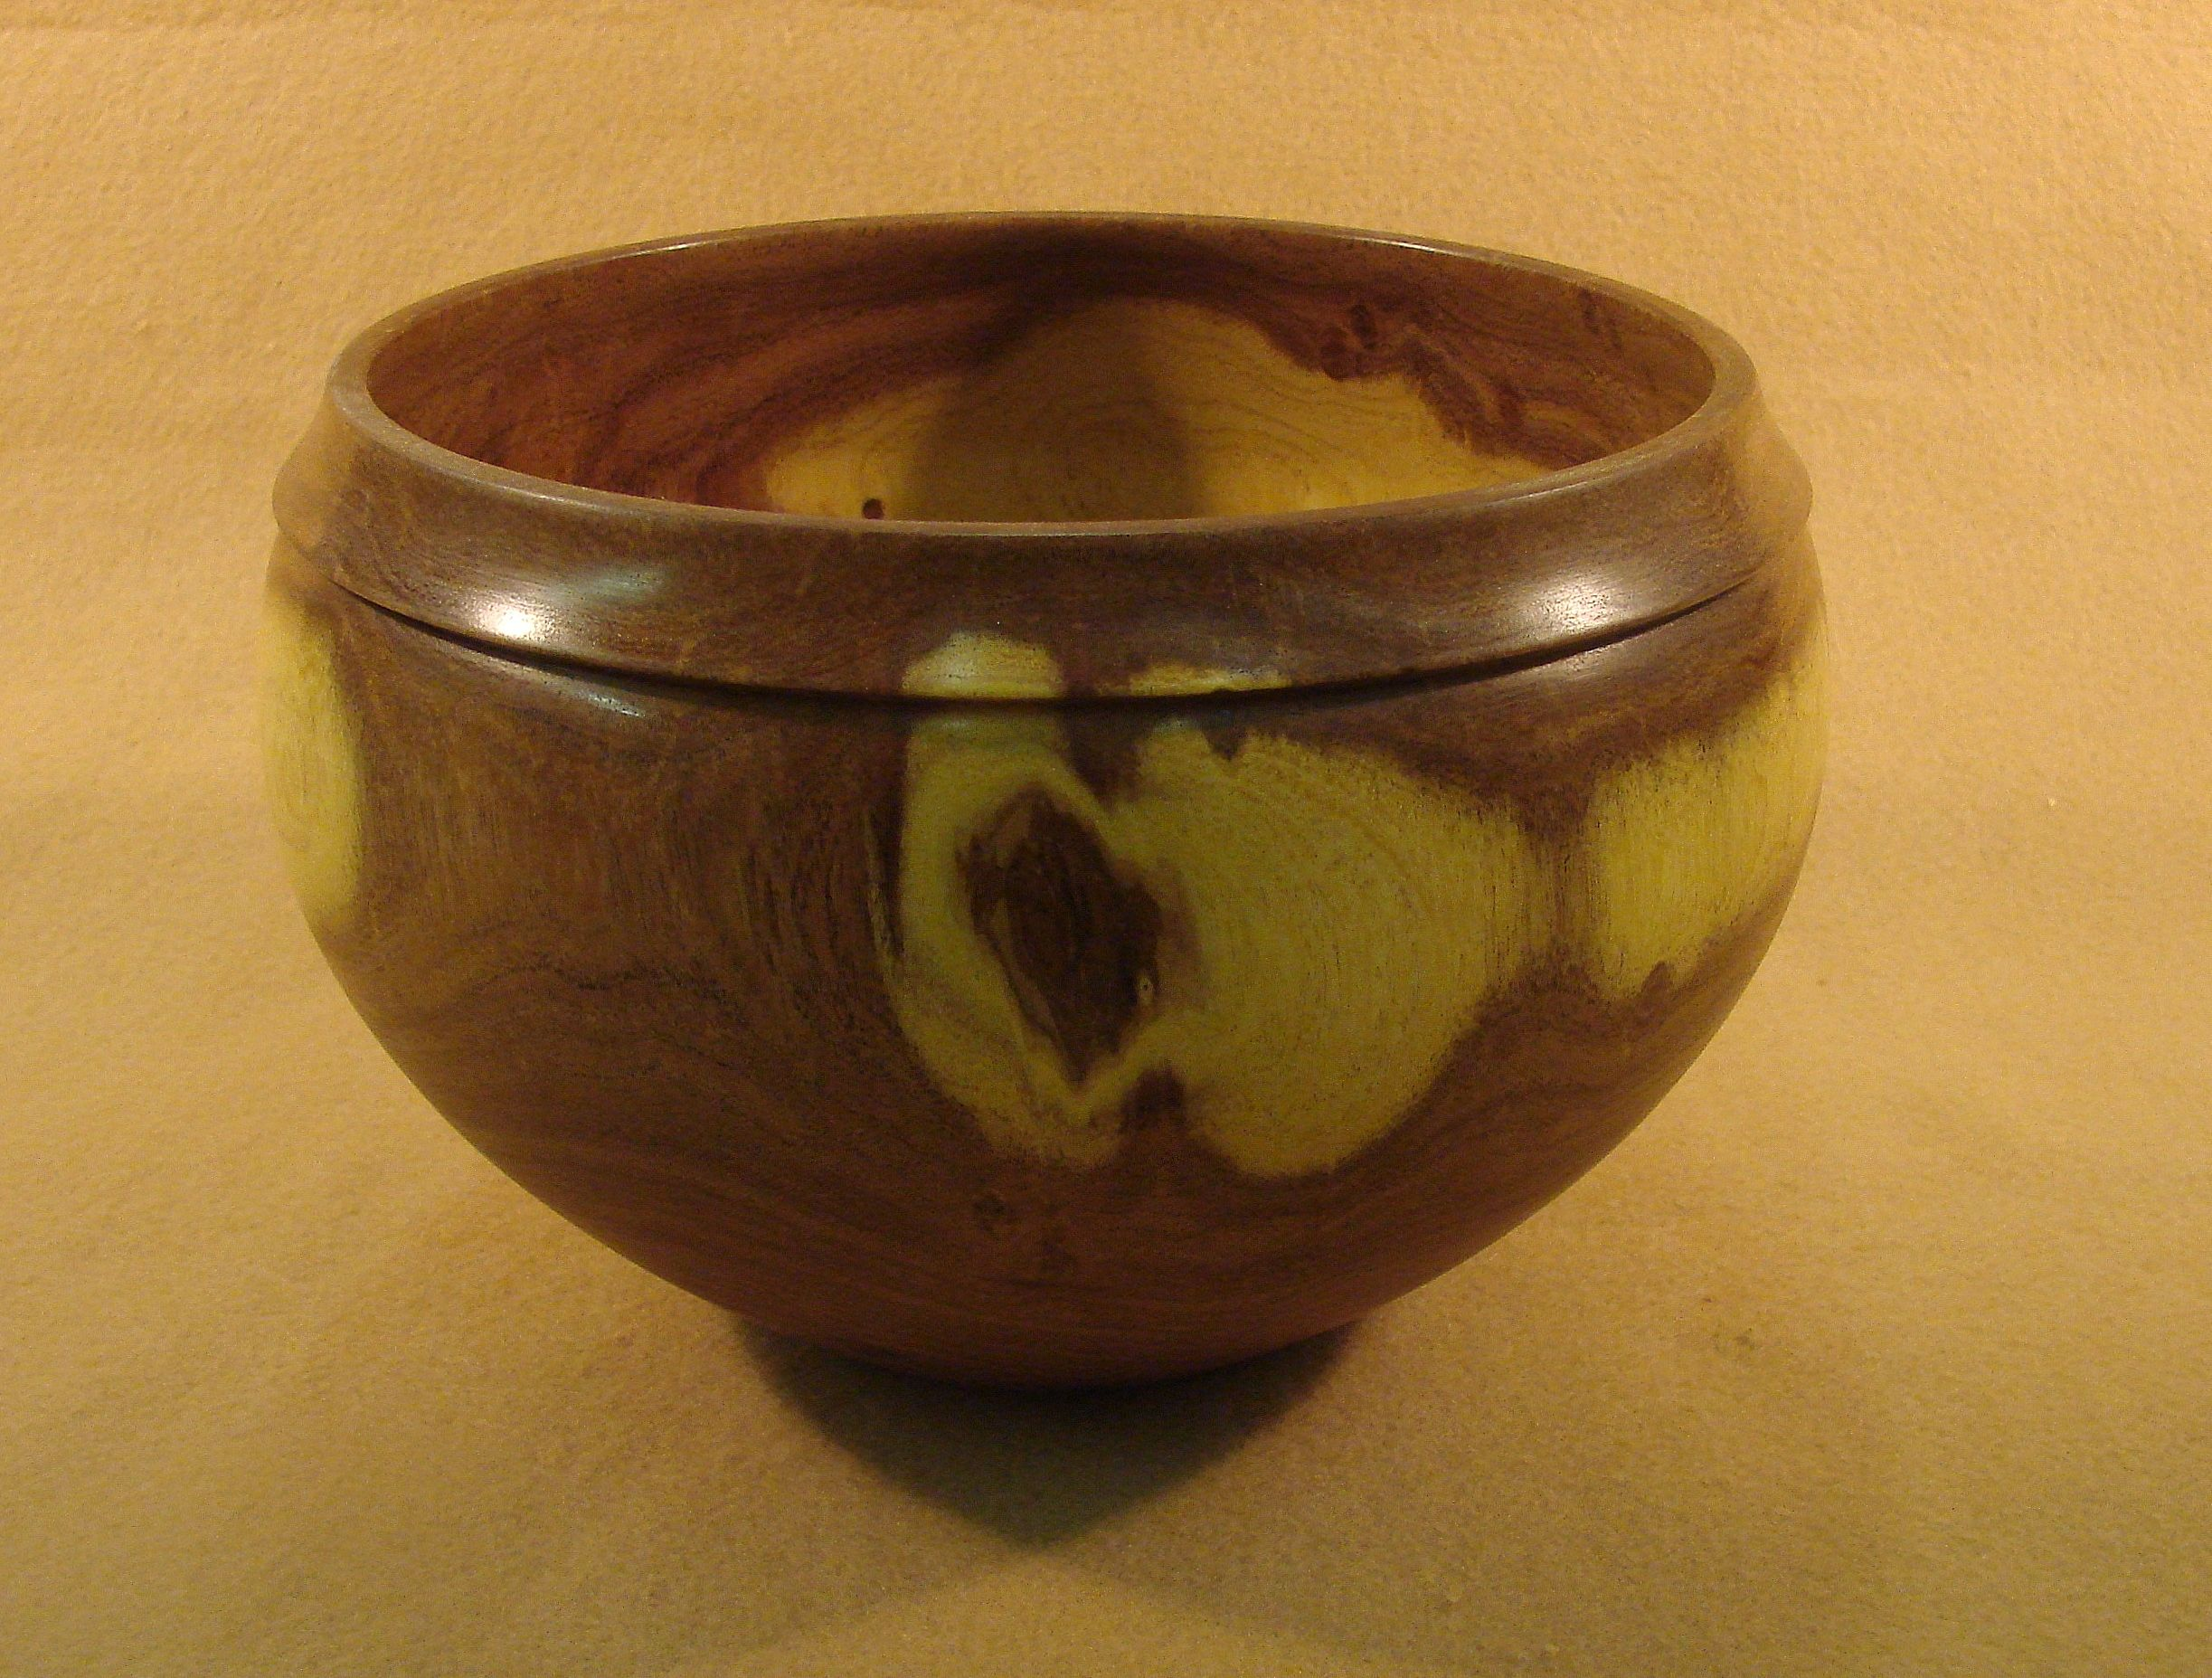 Lathe Turned Bowl Of Mesquite 8 1 2 In Dia By 5 1 2 In Height